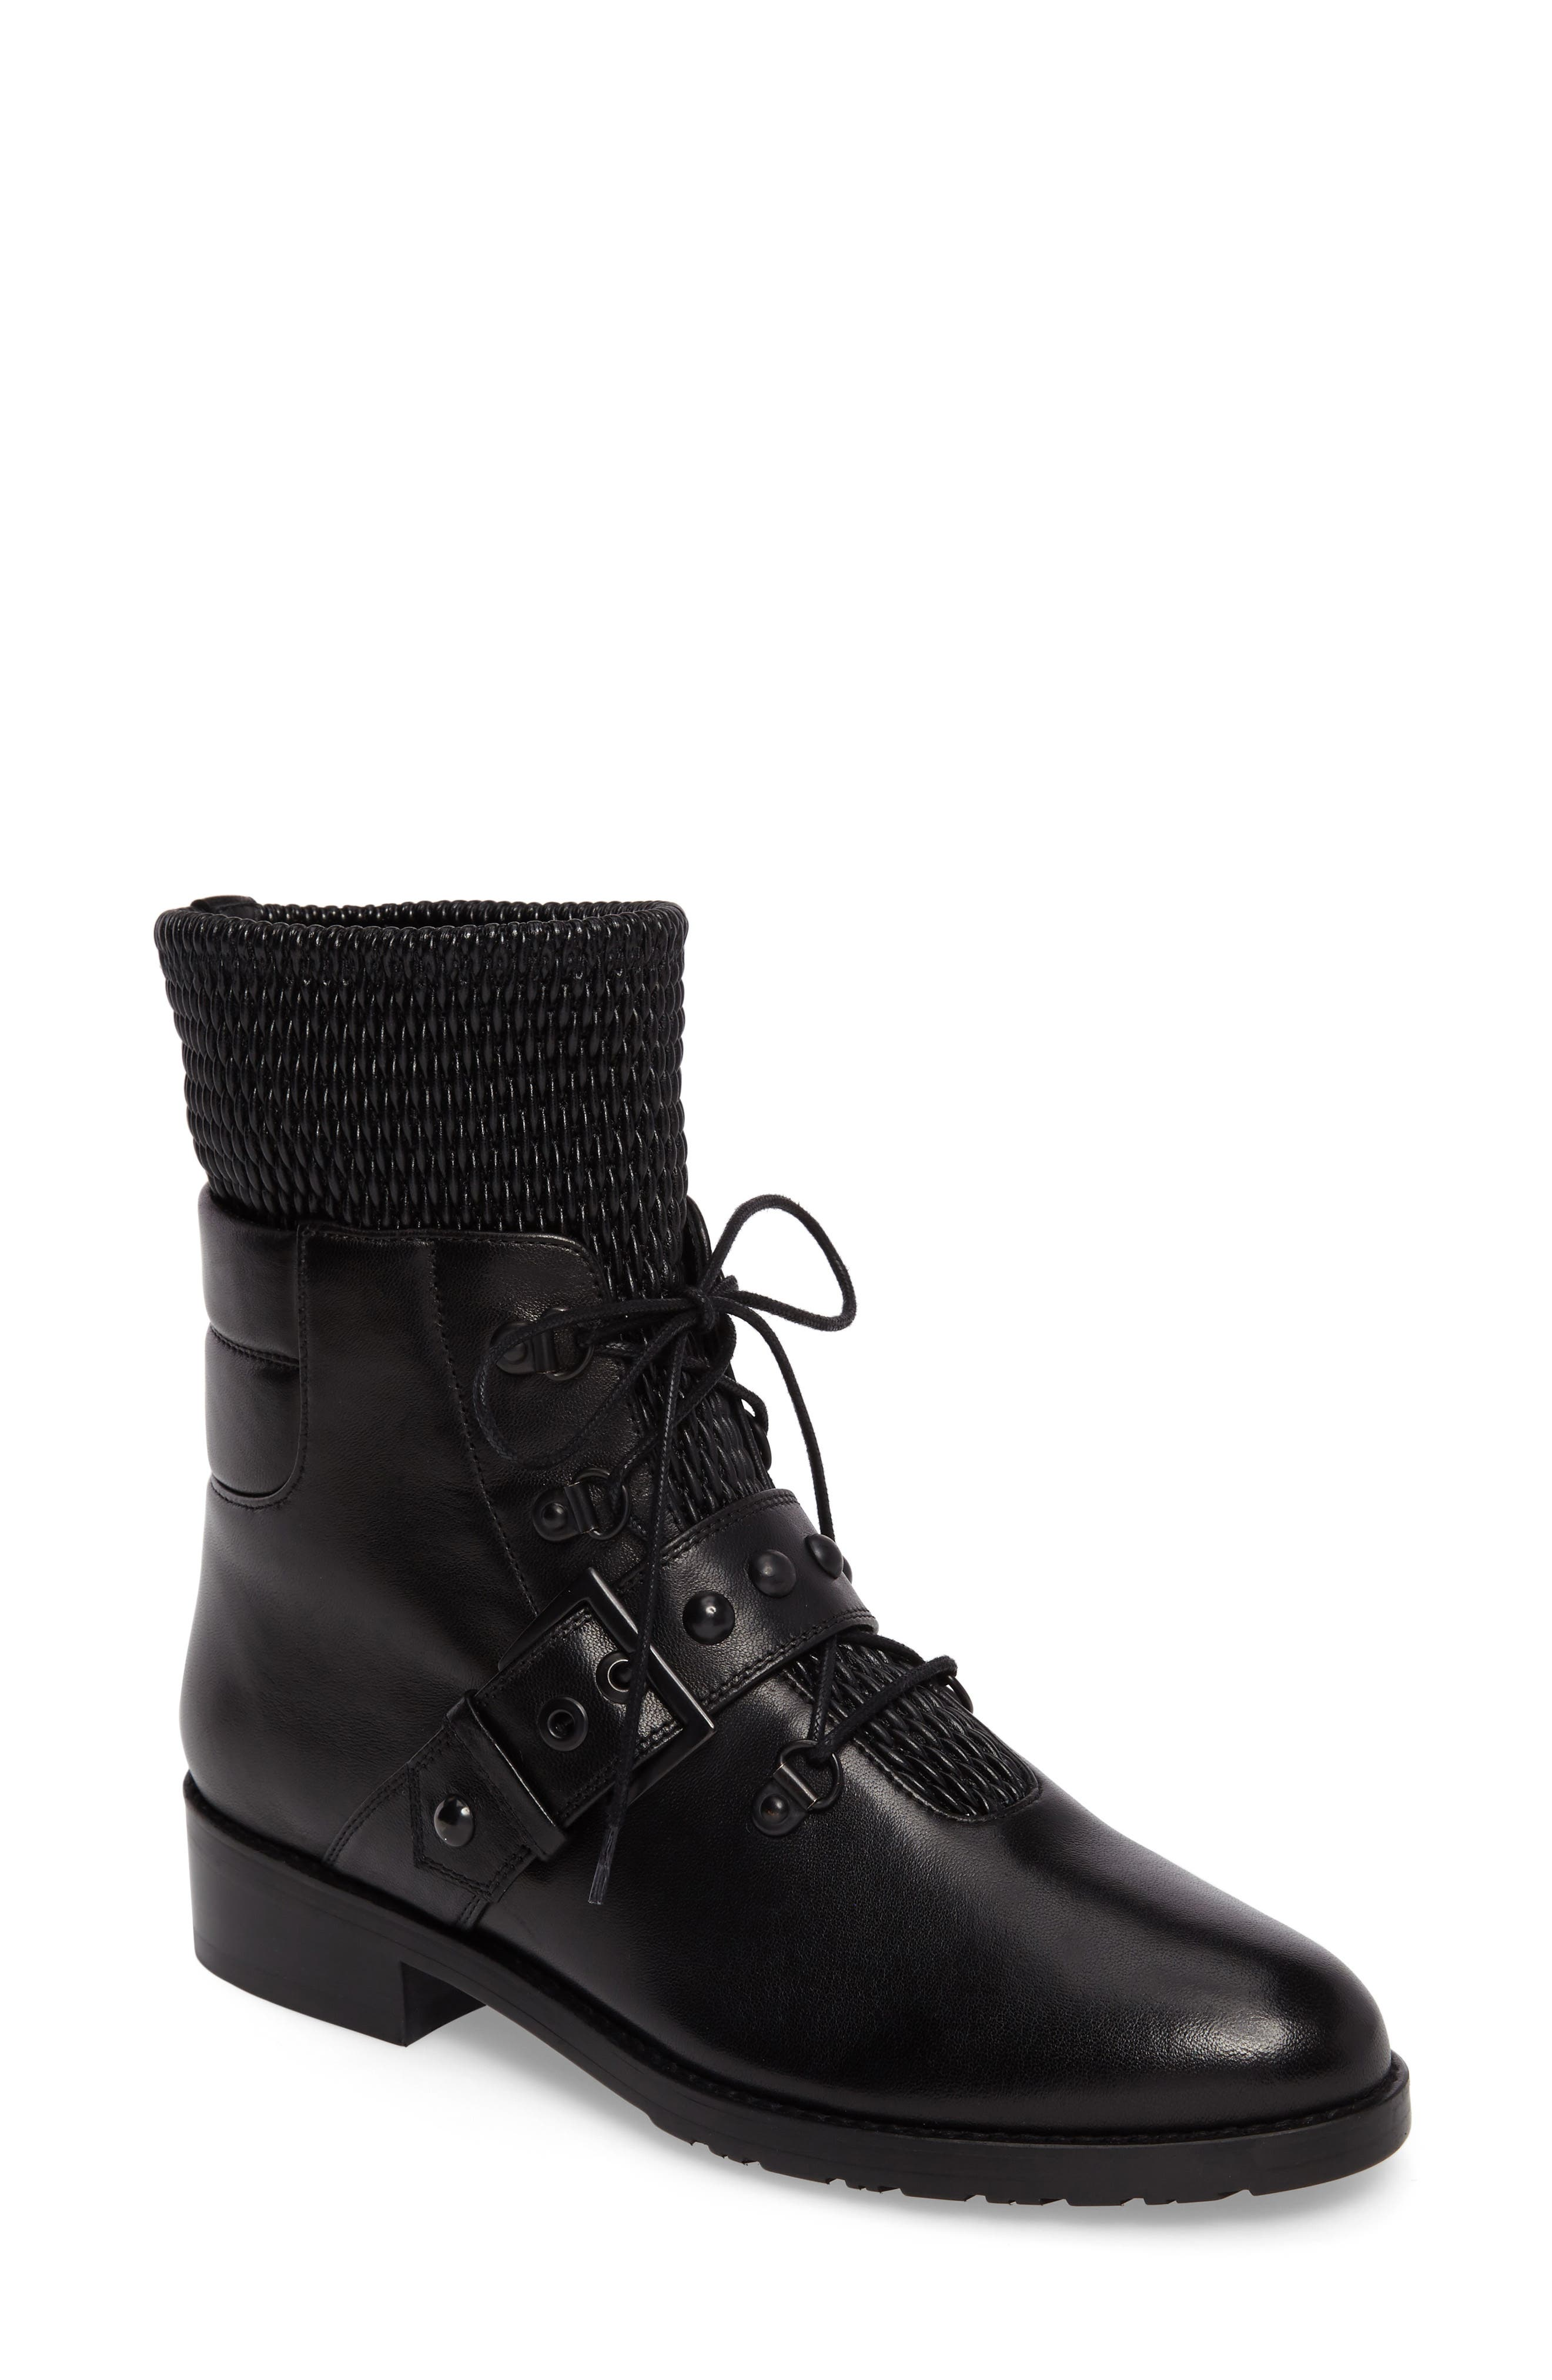 Alternate Image 1 Selected - Stuart Weitzman Stitchwork Combat Boot (Women)